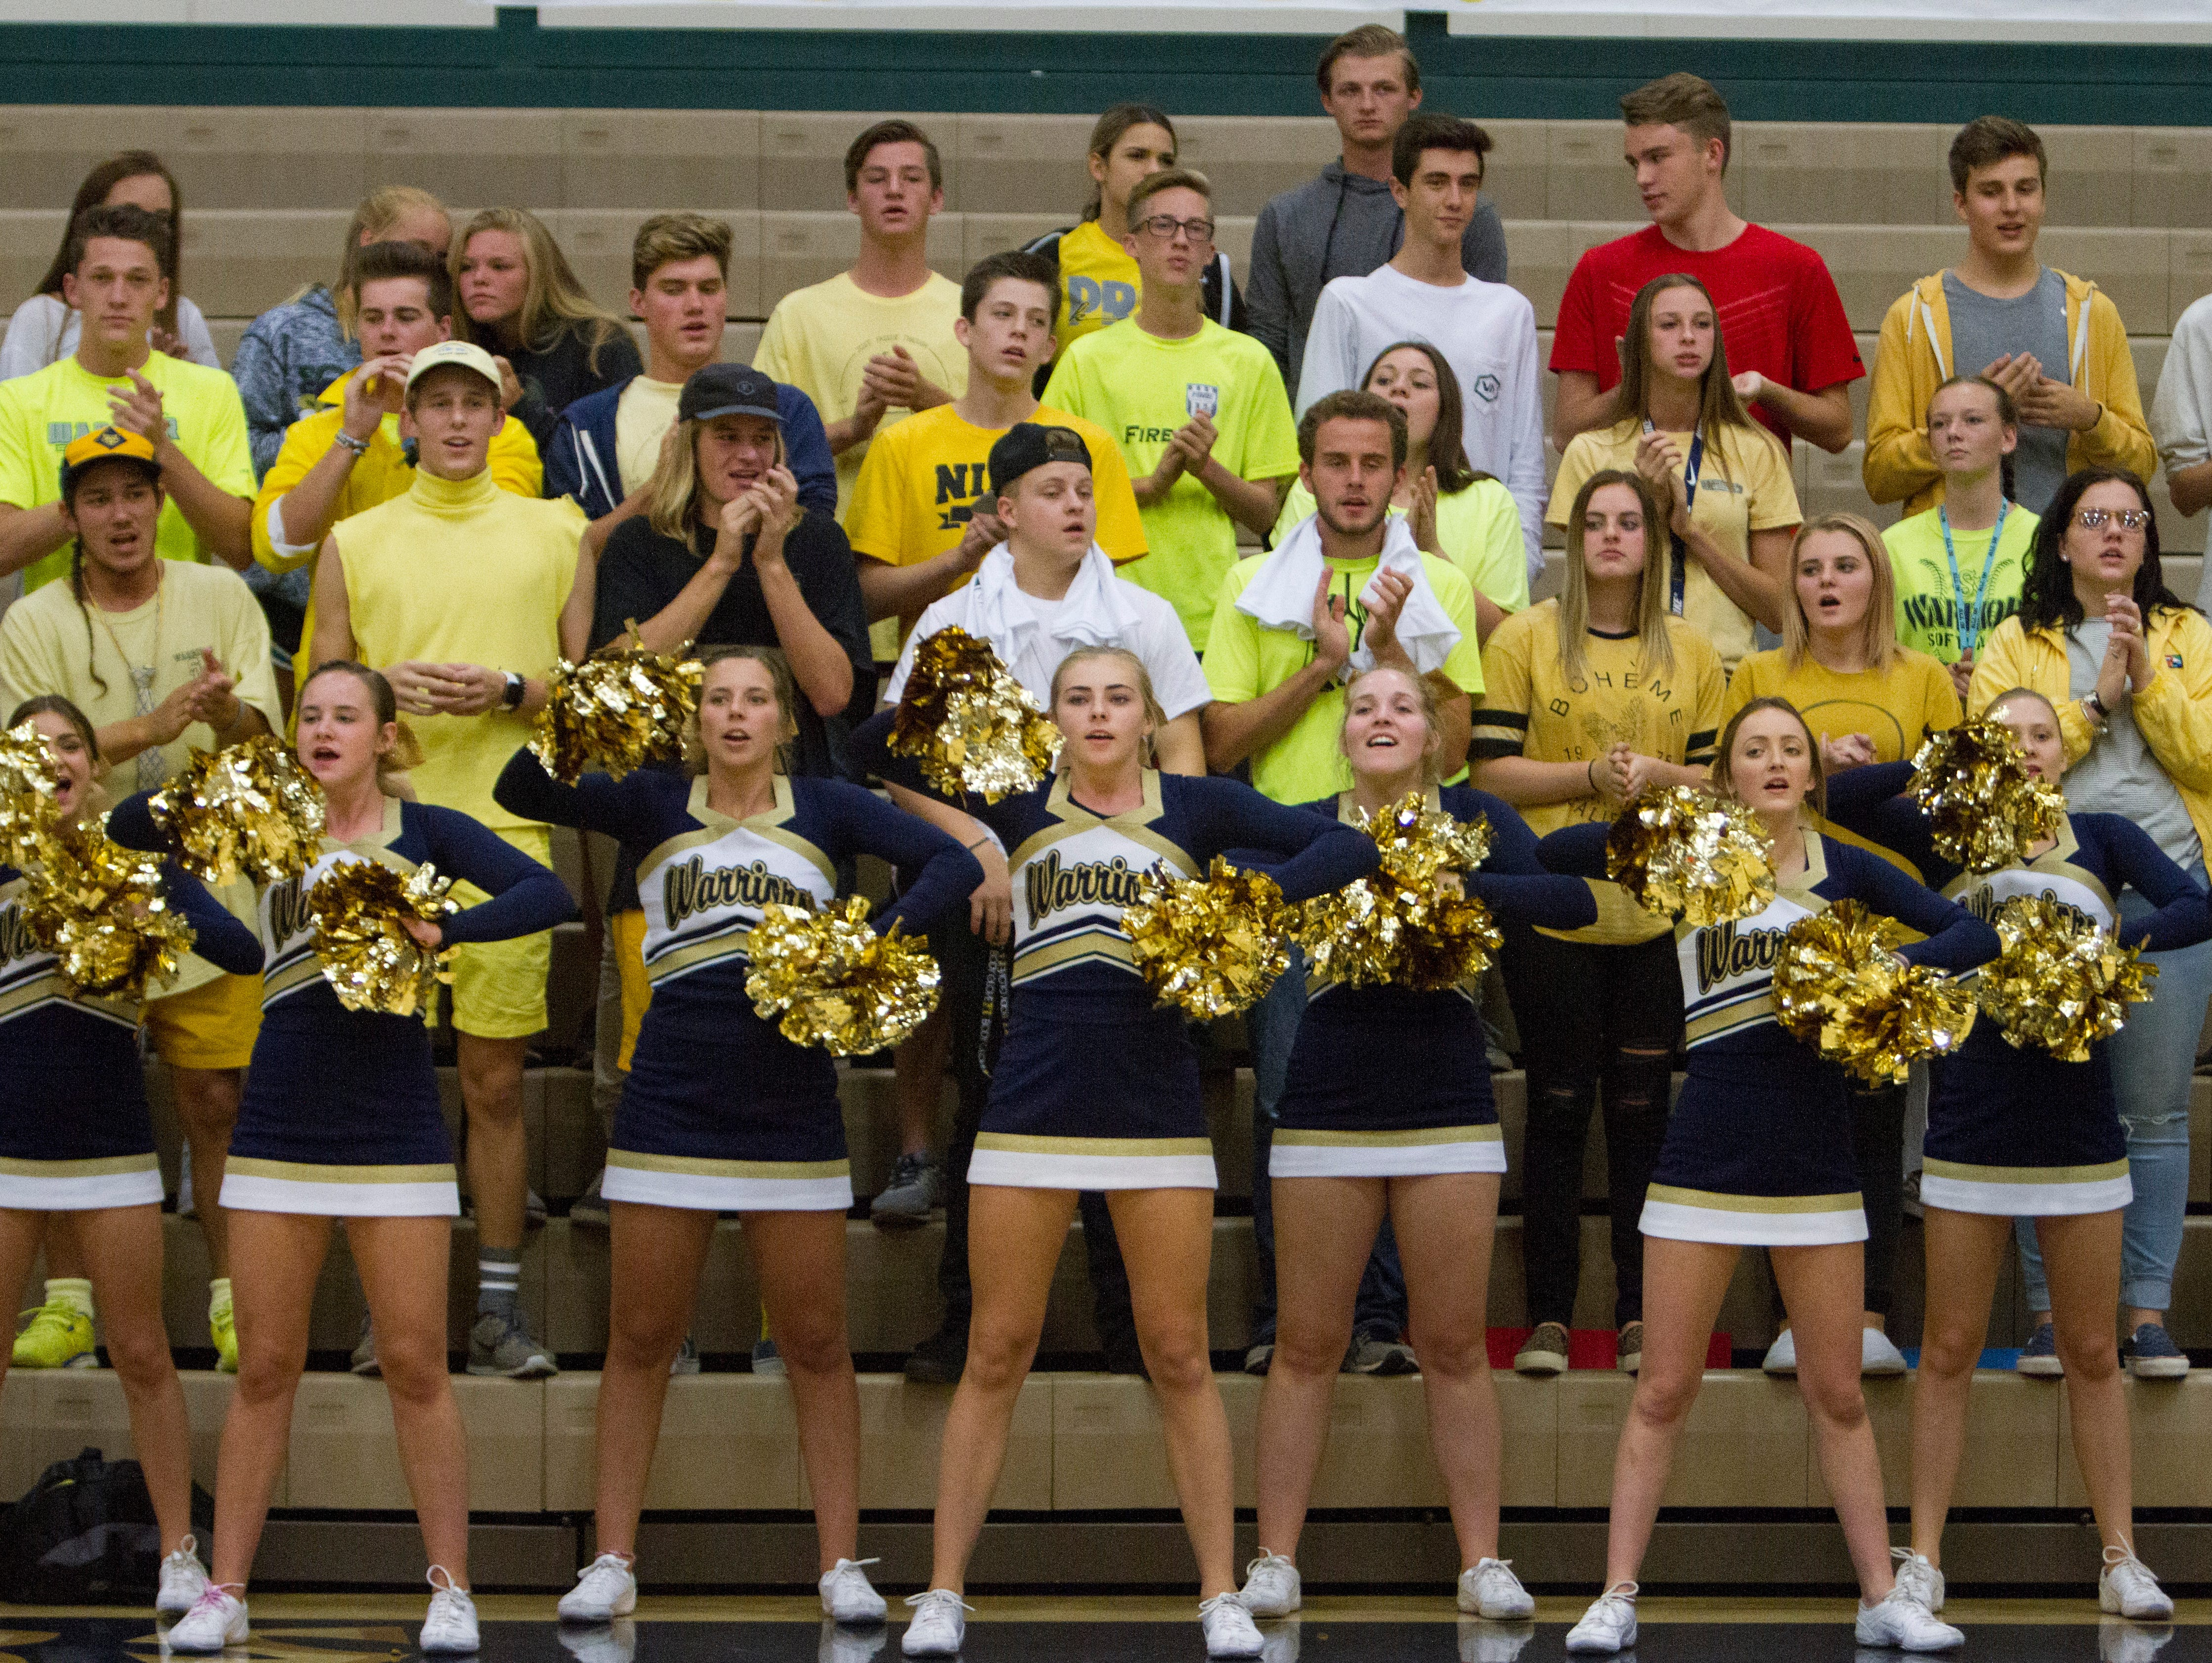 Members of the Snow Canyon High School student body wear yellow shirts in support of Mackayla Marshall, the daughter of Hurricane High volleyball coach Content Marshall and who was recently diagnosed with cancer Thursday, Sept. 22, 2016.